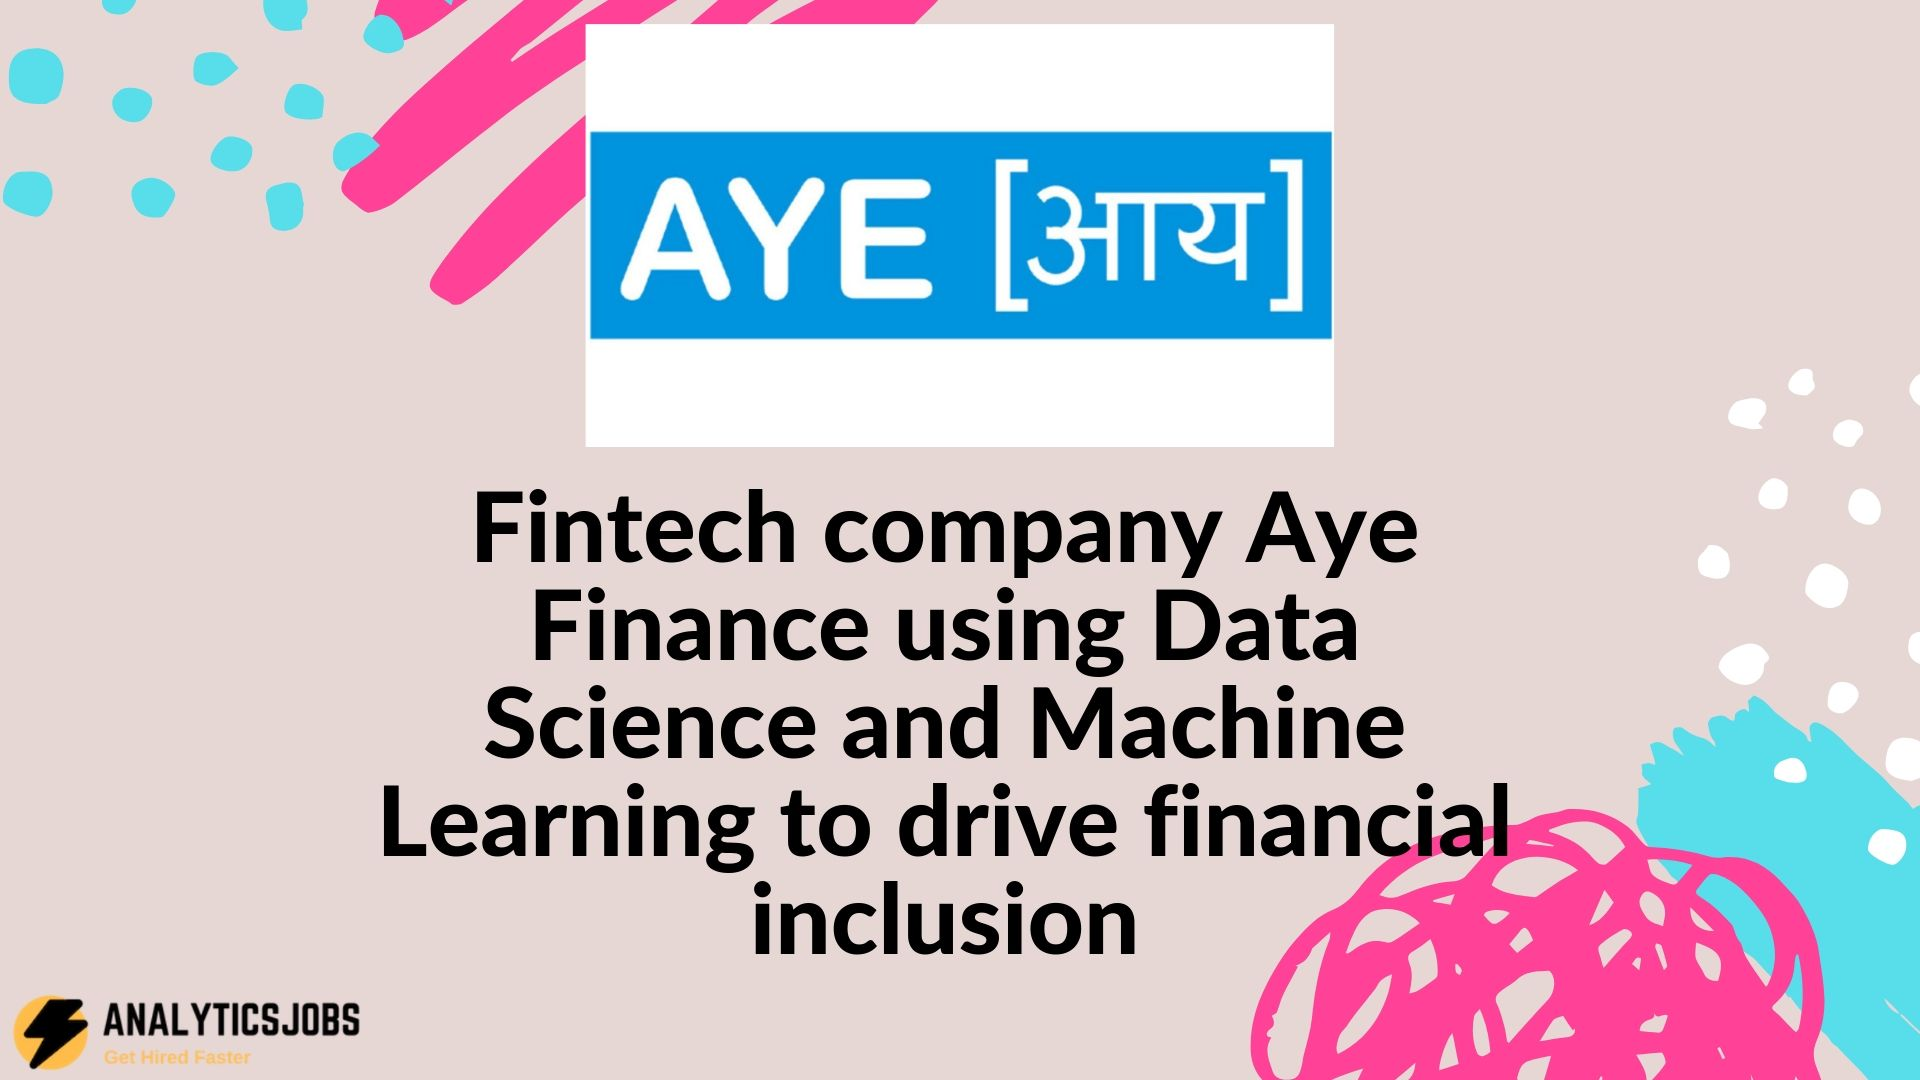 Fintech company Aye Finance using Data Science and Machine Learning to drive financial inclusion